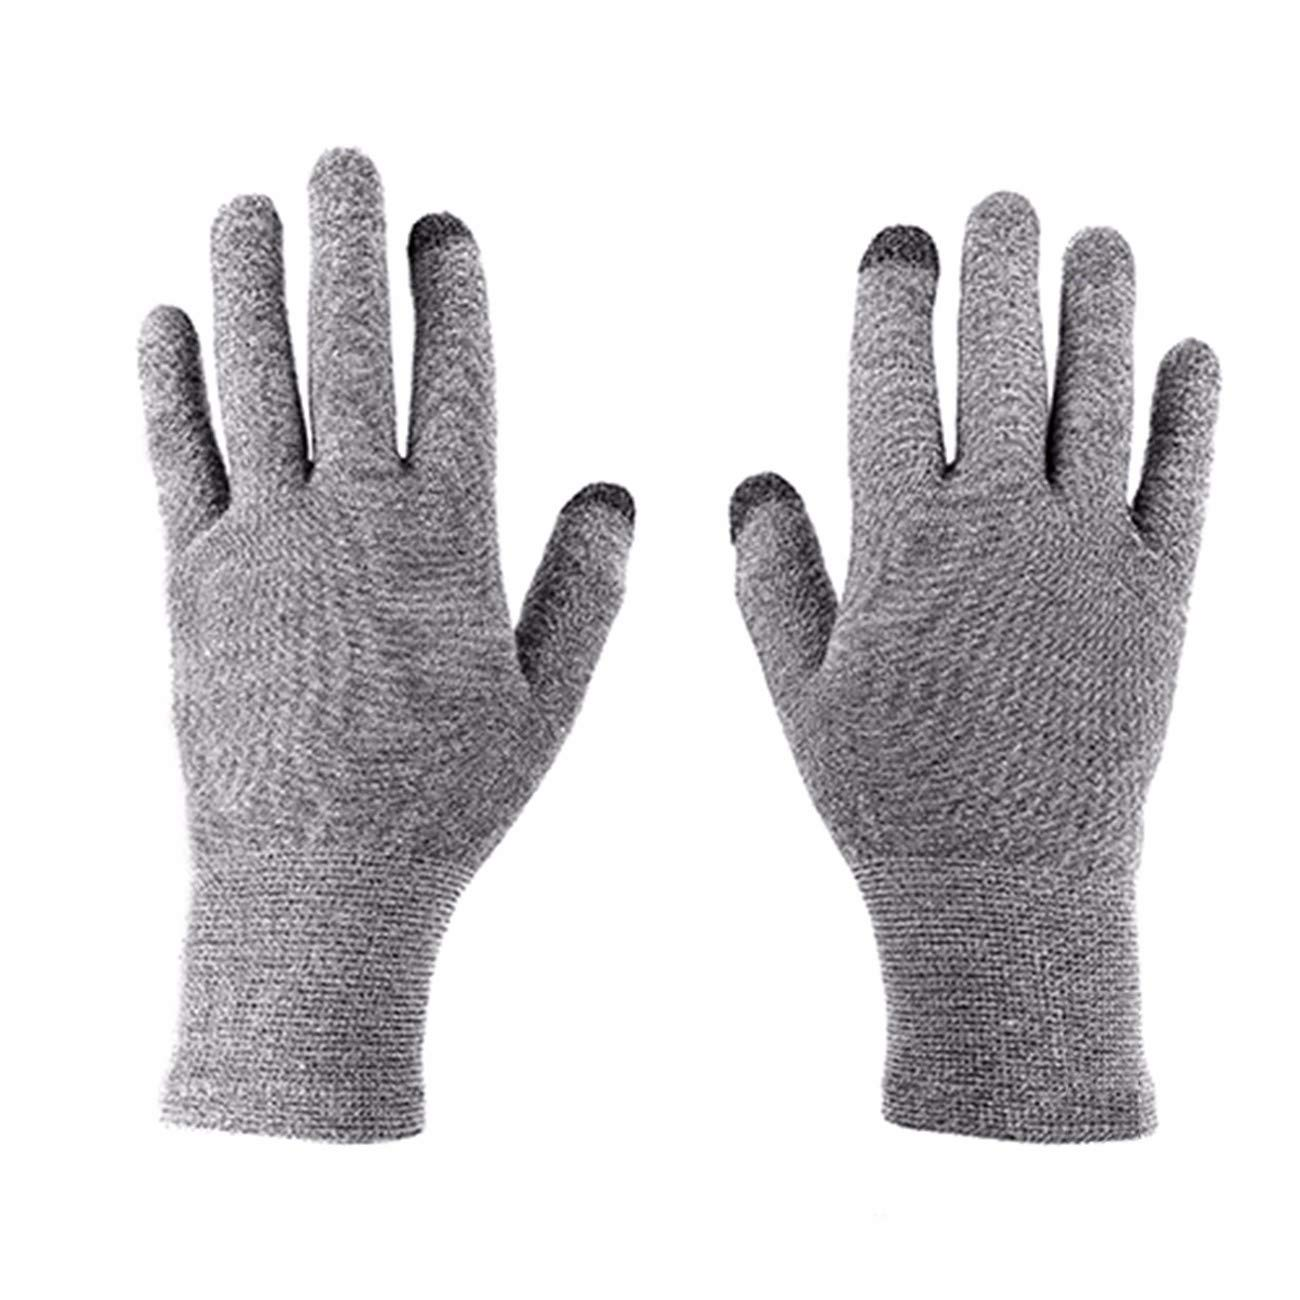 Mens and Womens Thermal Knitted Outdoor Gloves wear Resistant Five Fingers Gloves. touchable Screen